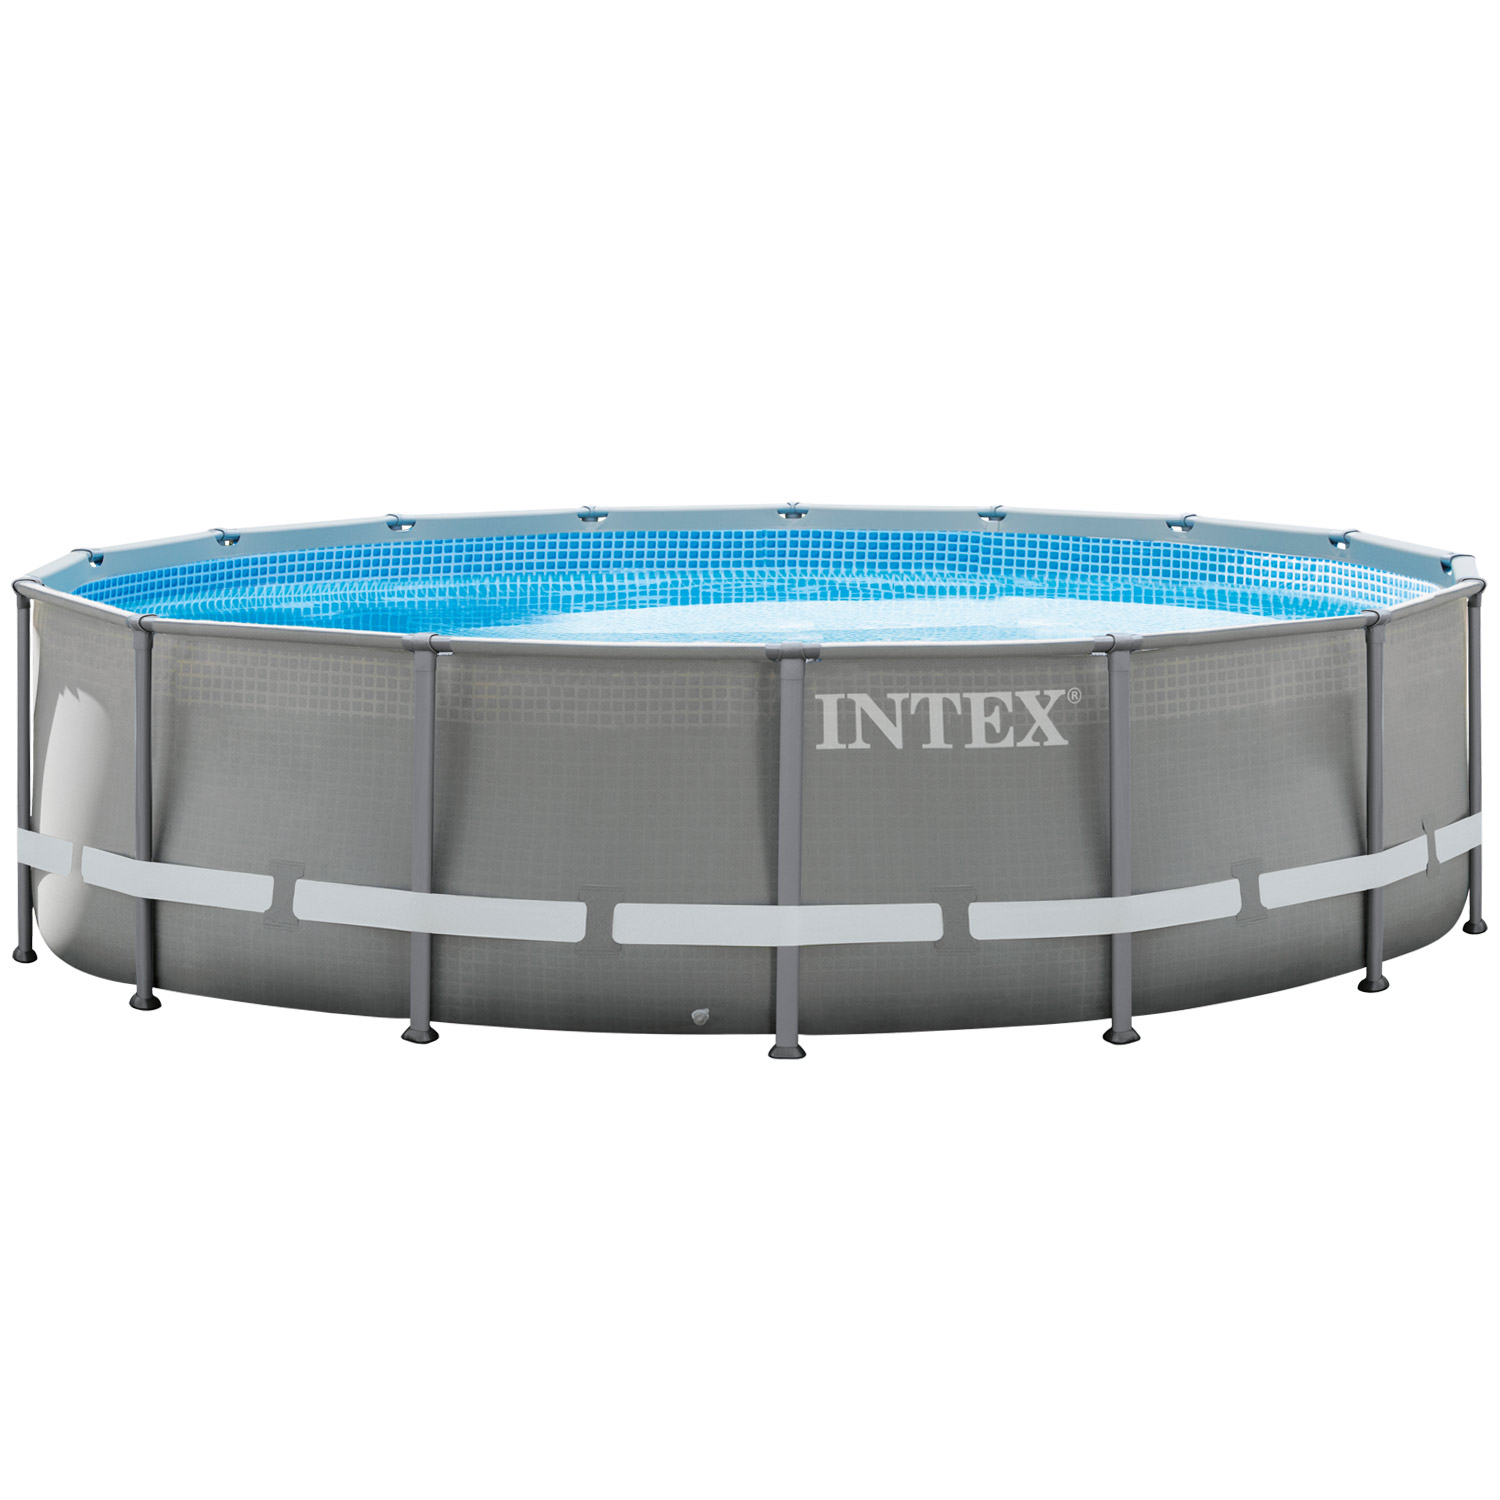 intex 488x122 swimming pool steel wall metal frame new. Black Bedroom Furniture Sets. Home Design Ideas